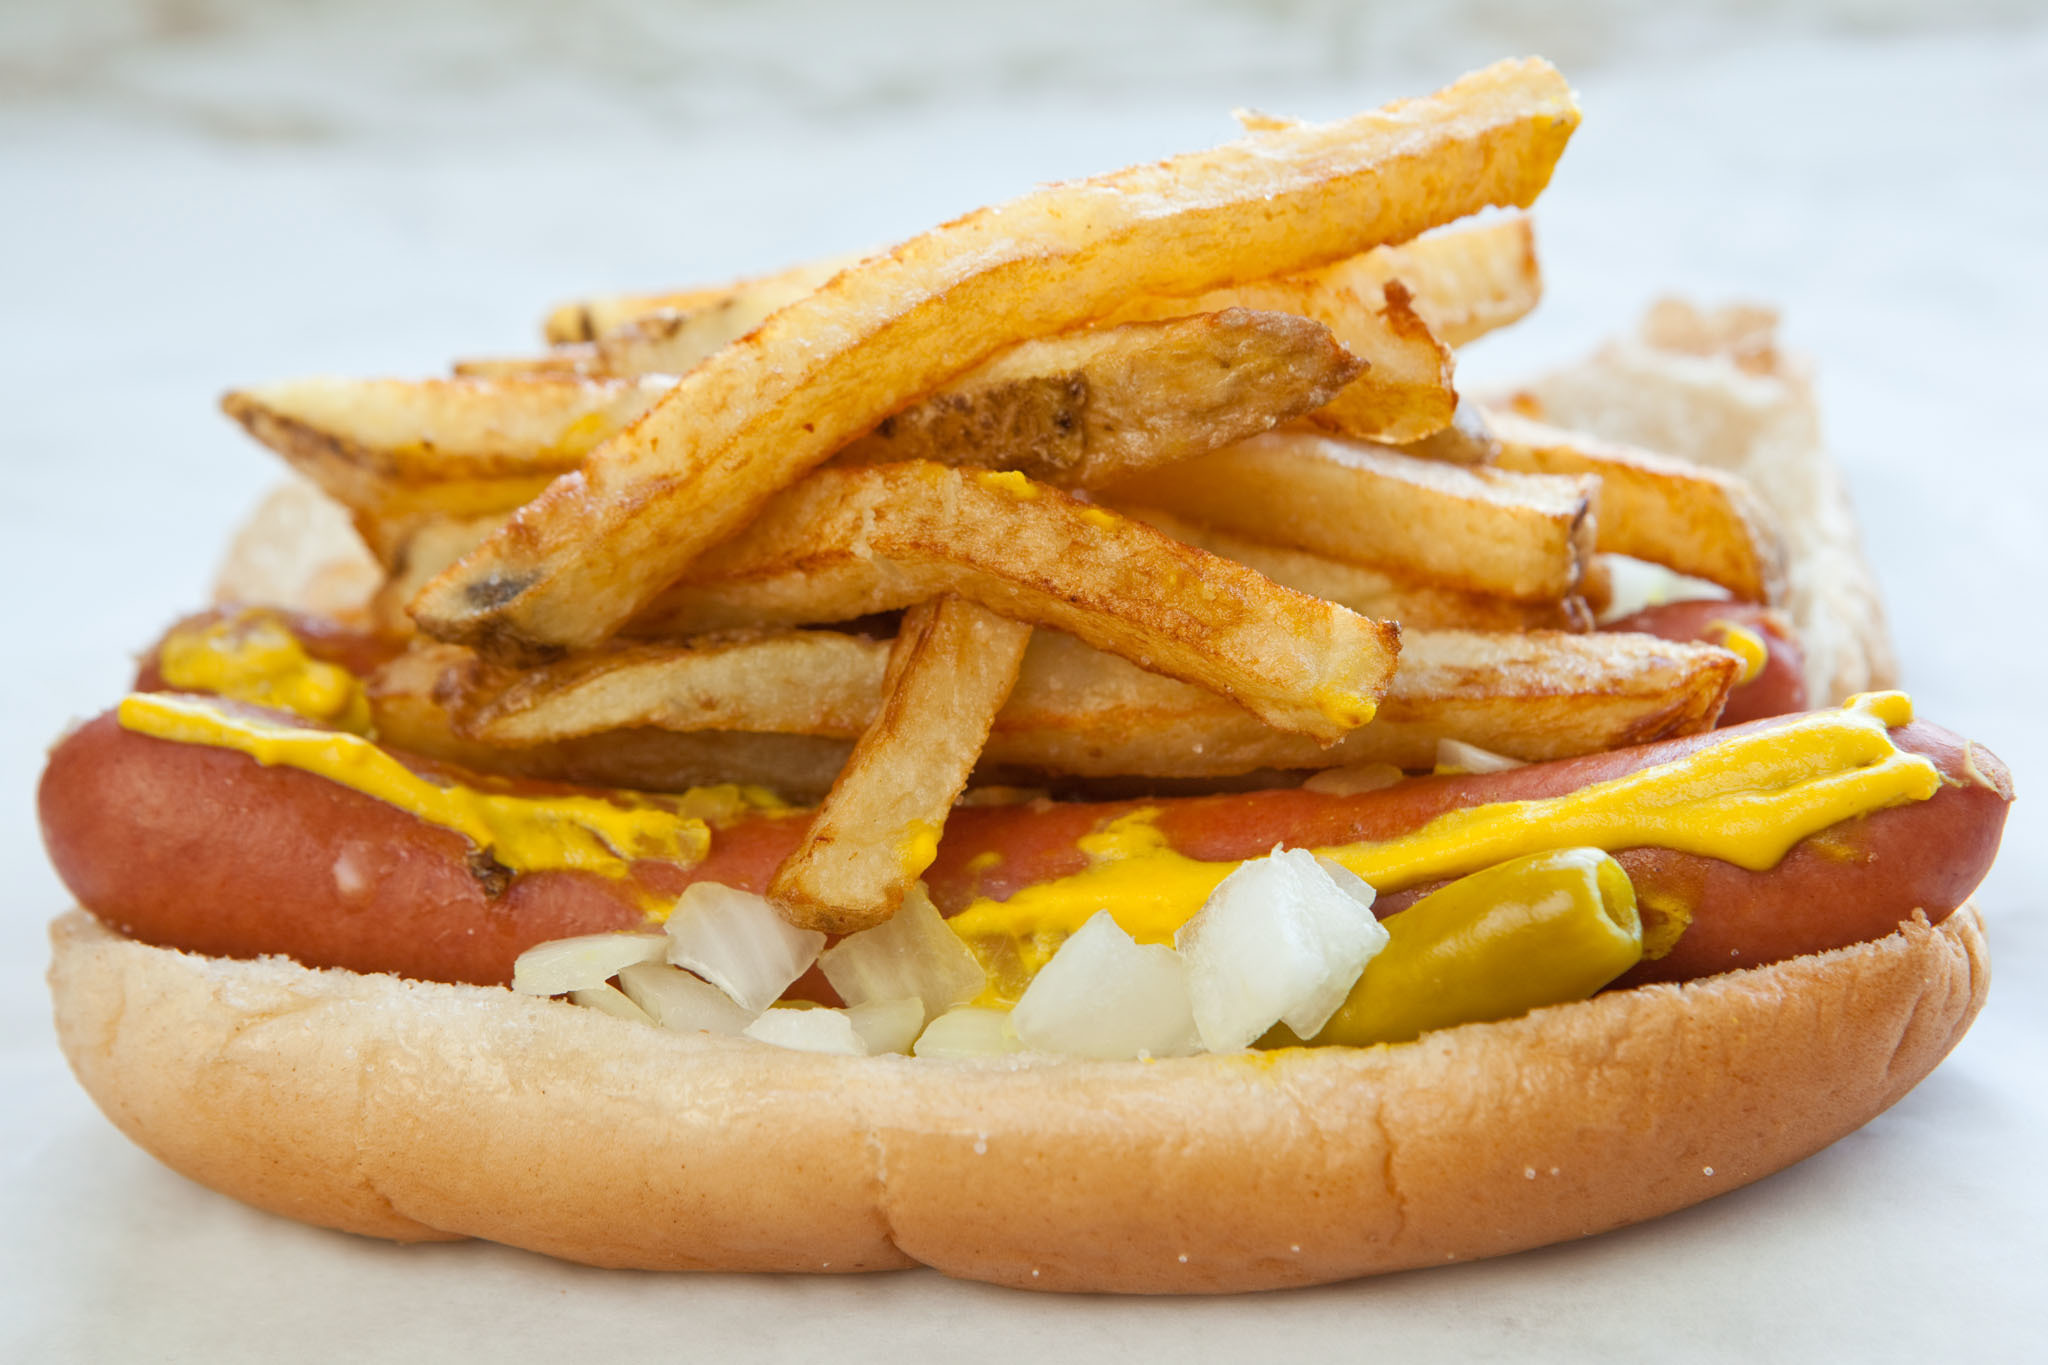 a hot dog with fries from Gene And Jude's in River Grove